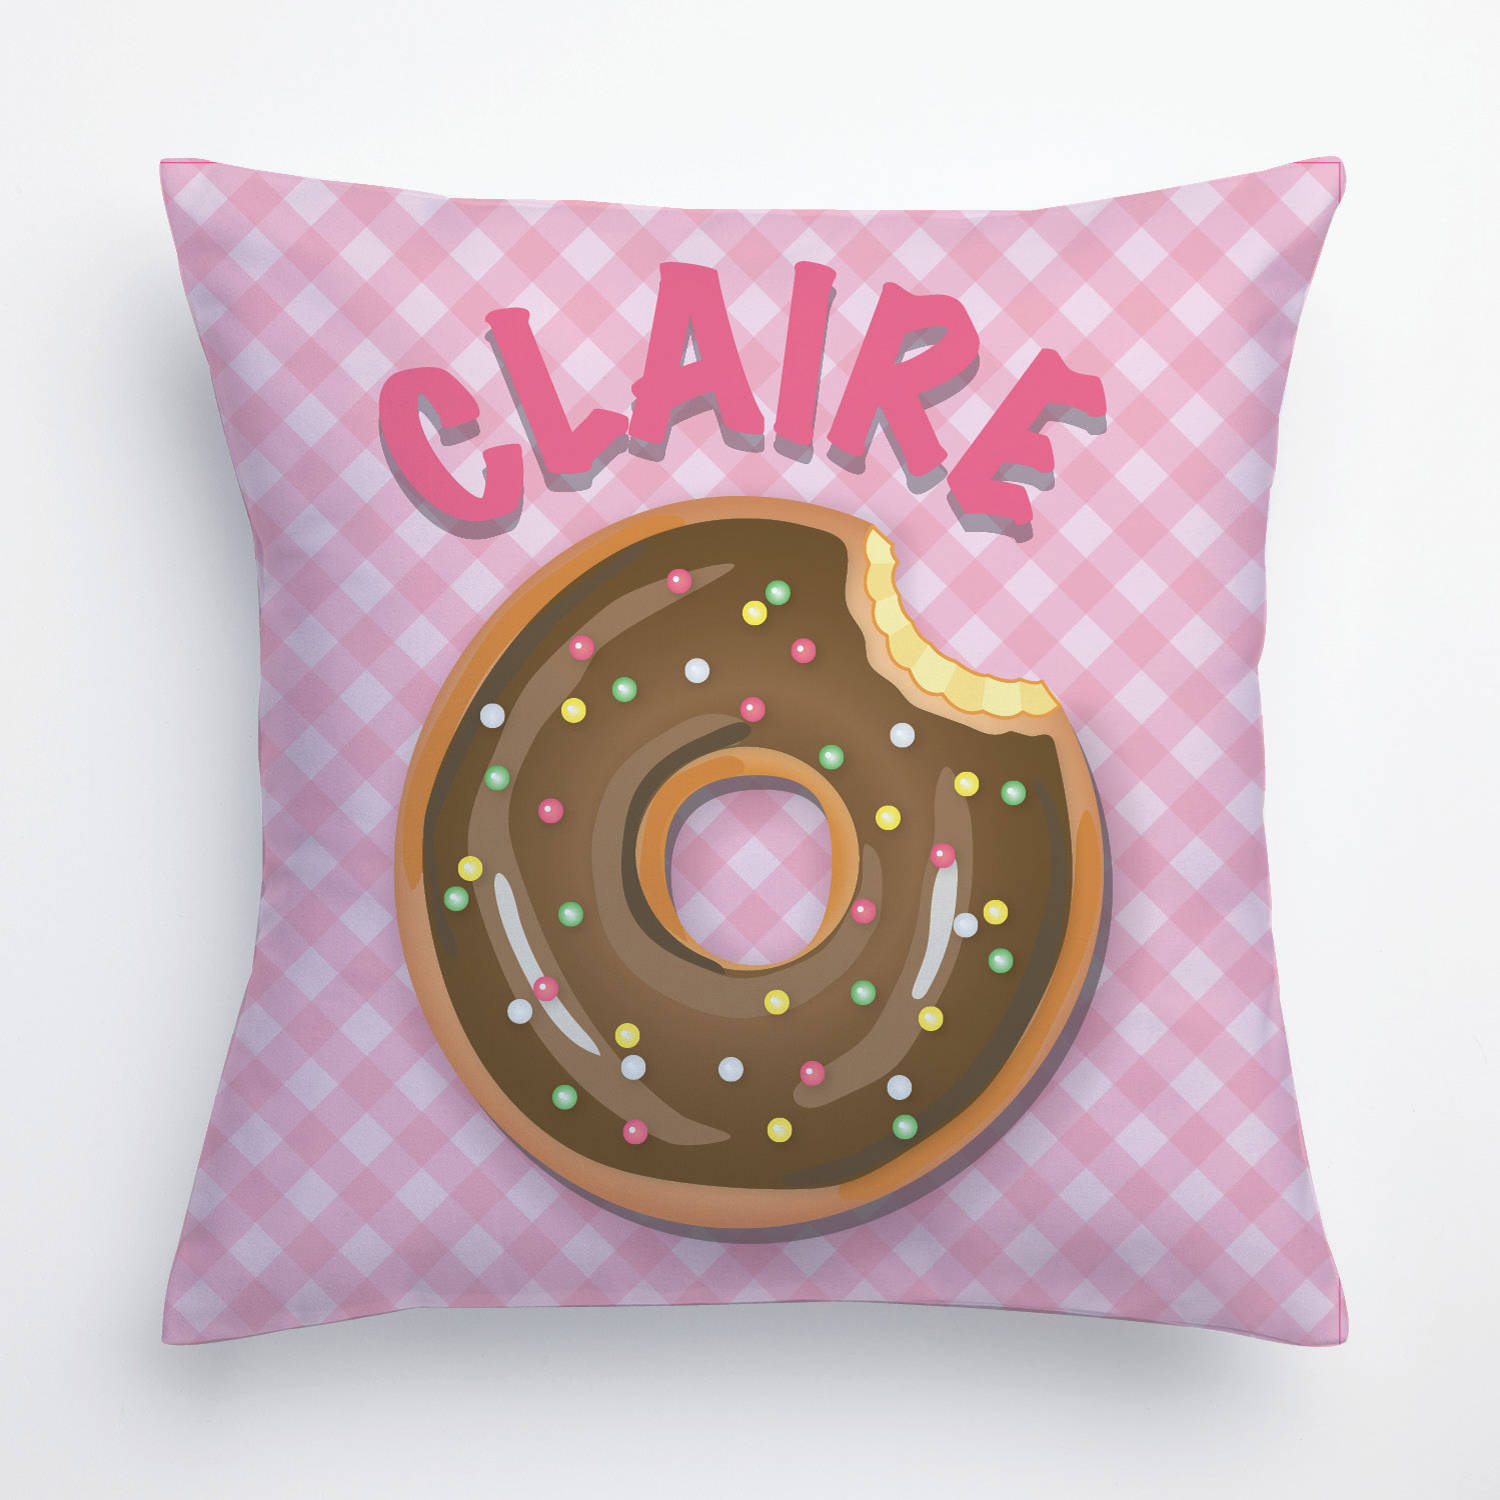 Yummy Donut Personalize Pillow In Yellow, Teal, Pink or Green